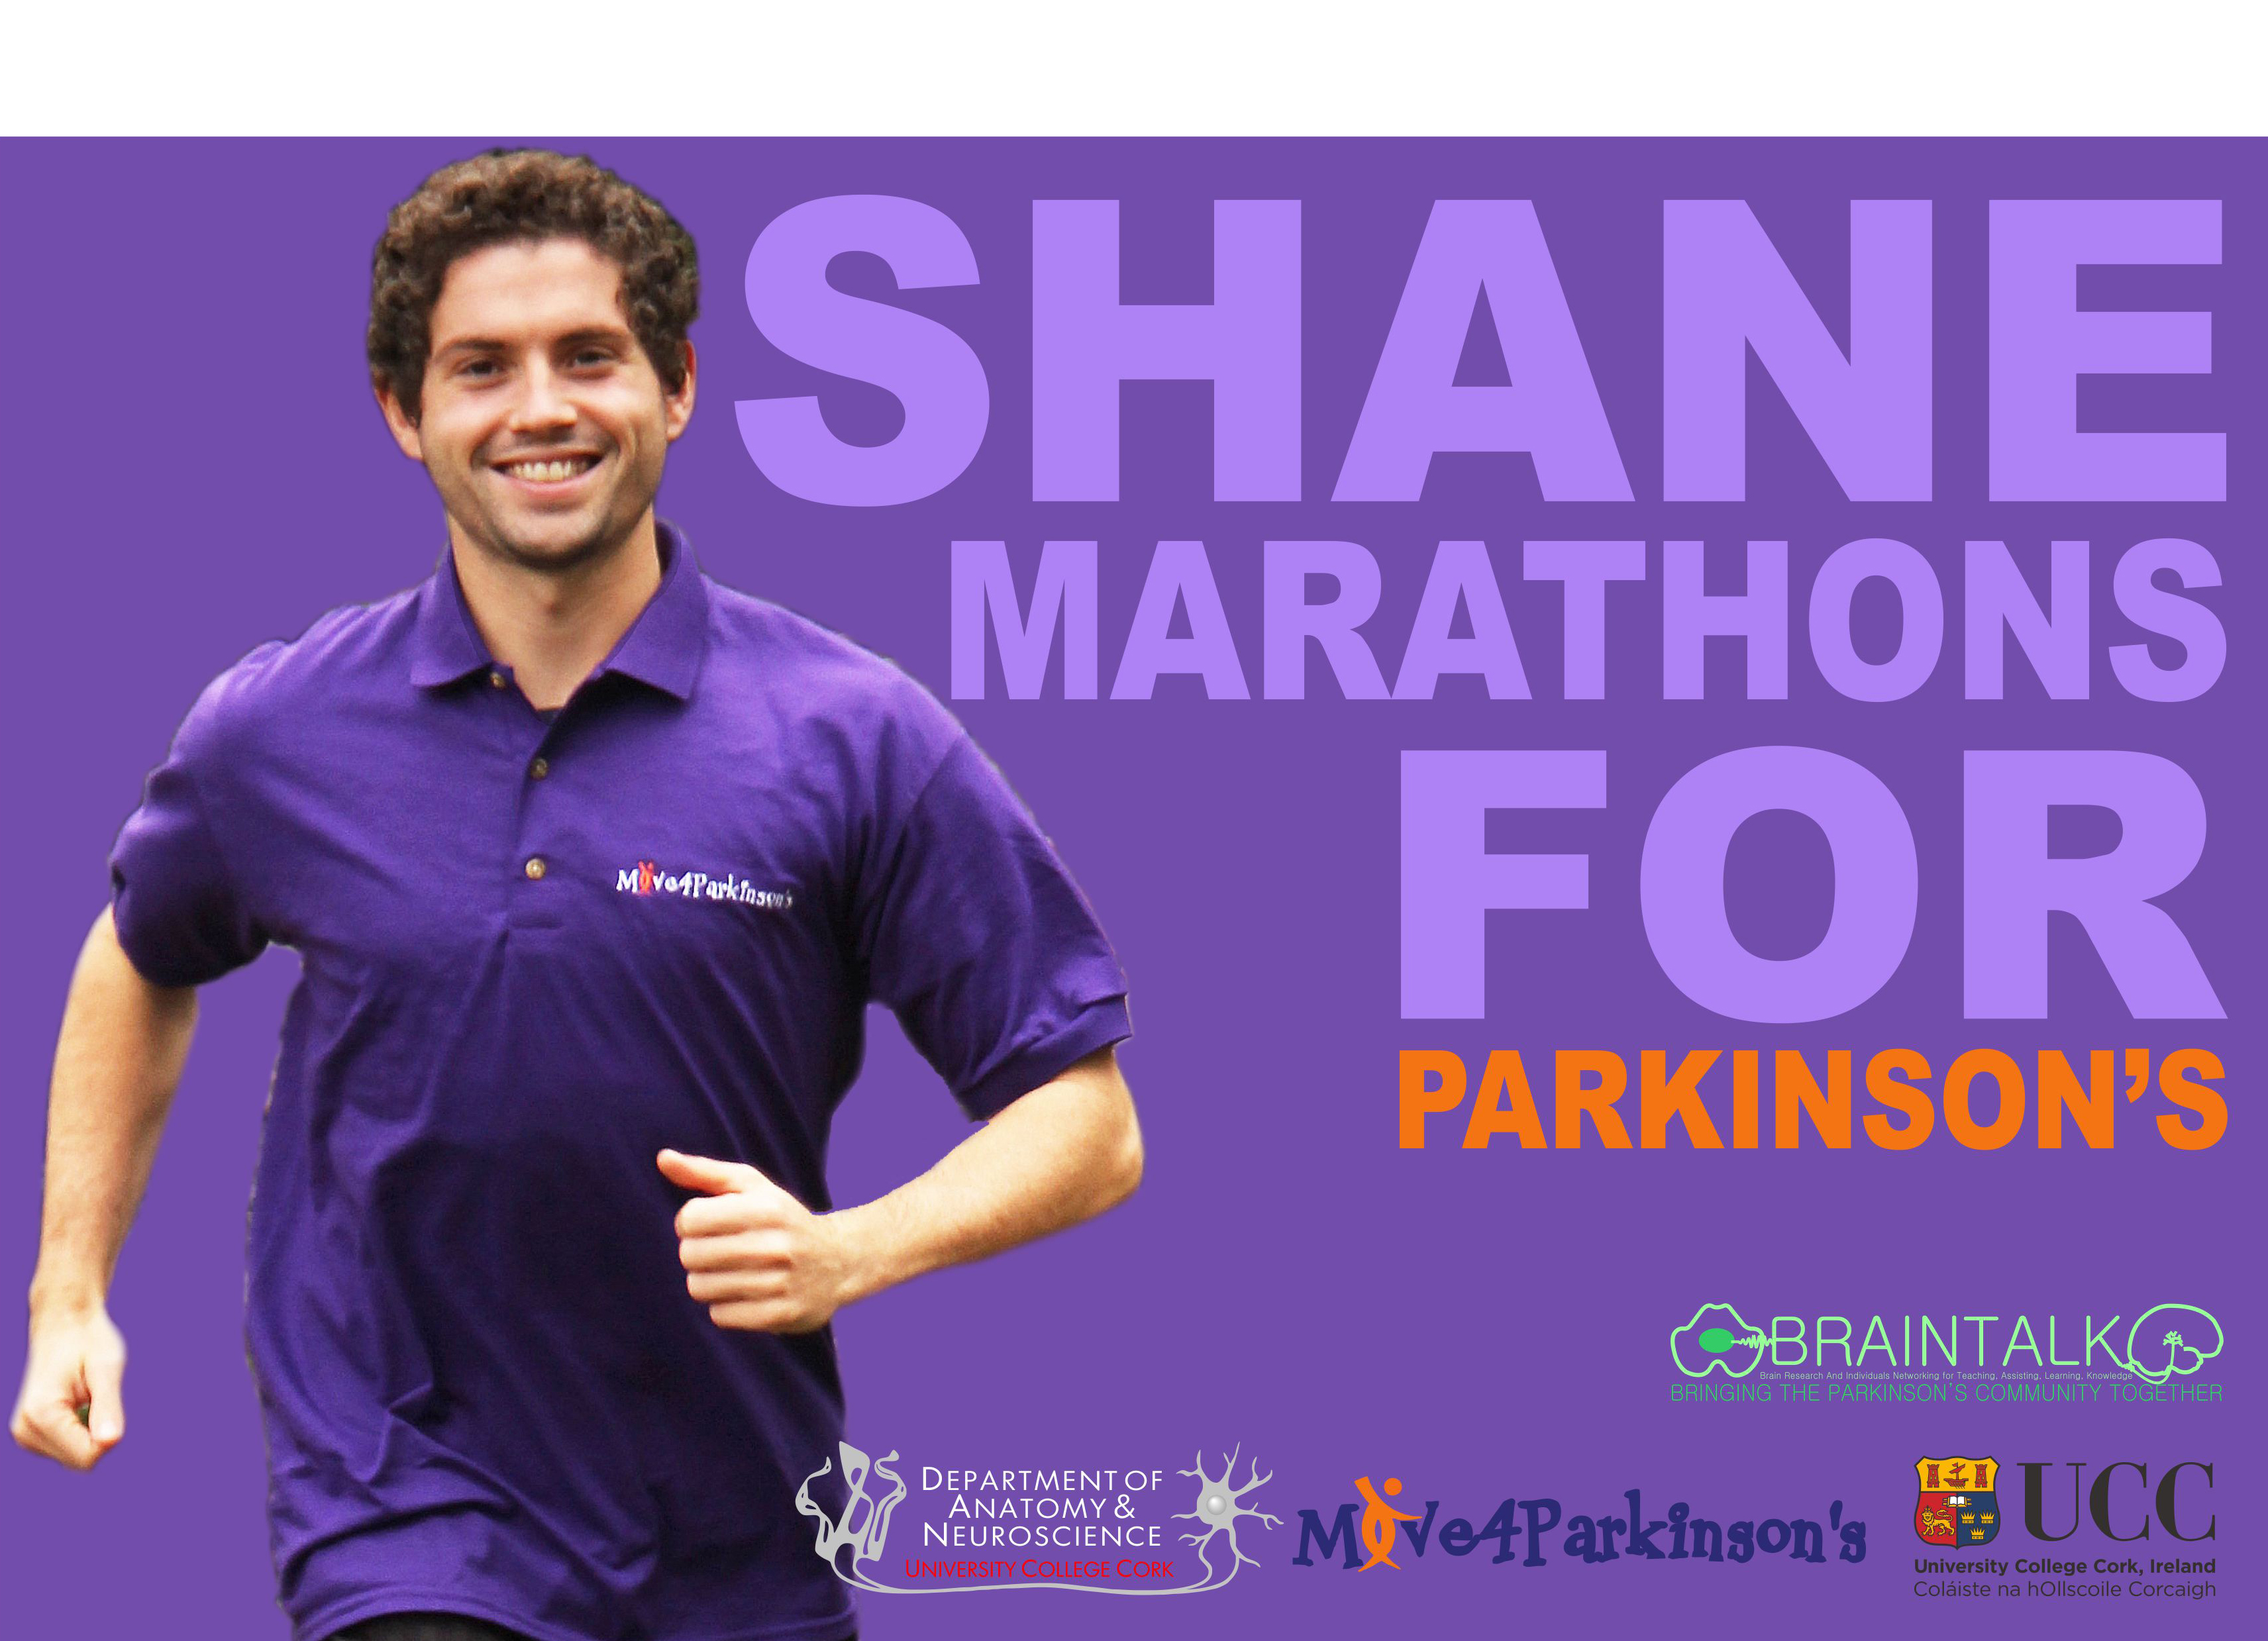 Shane Hegarty 'Marathons for Parkinson's'